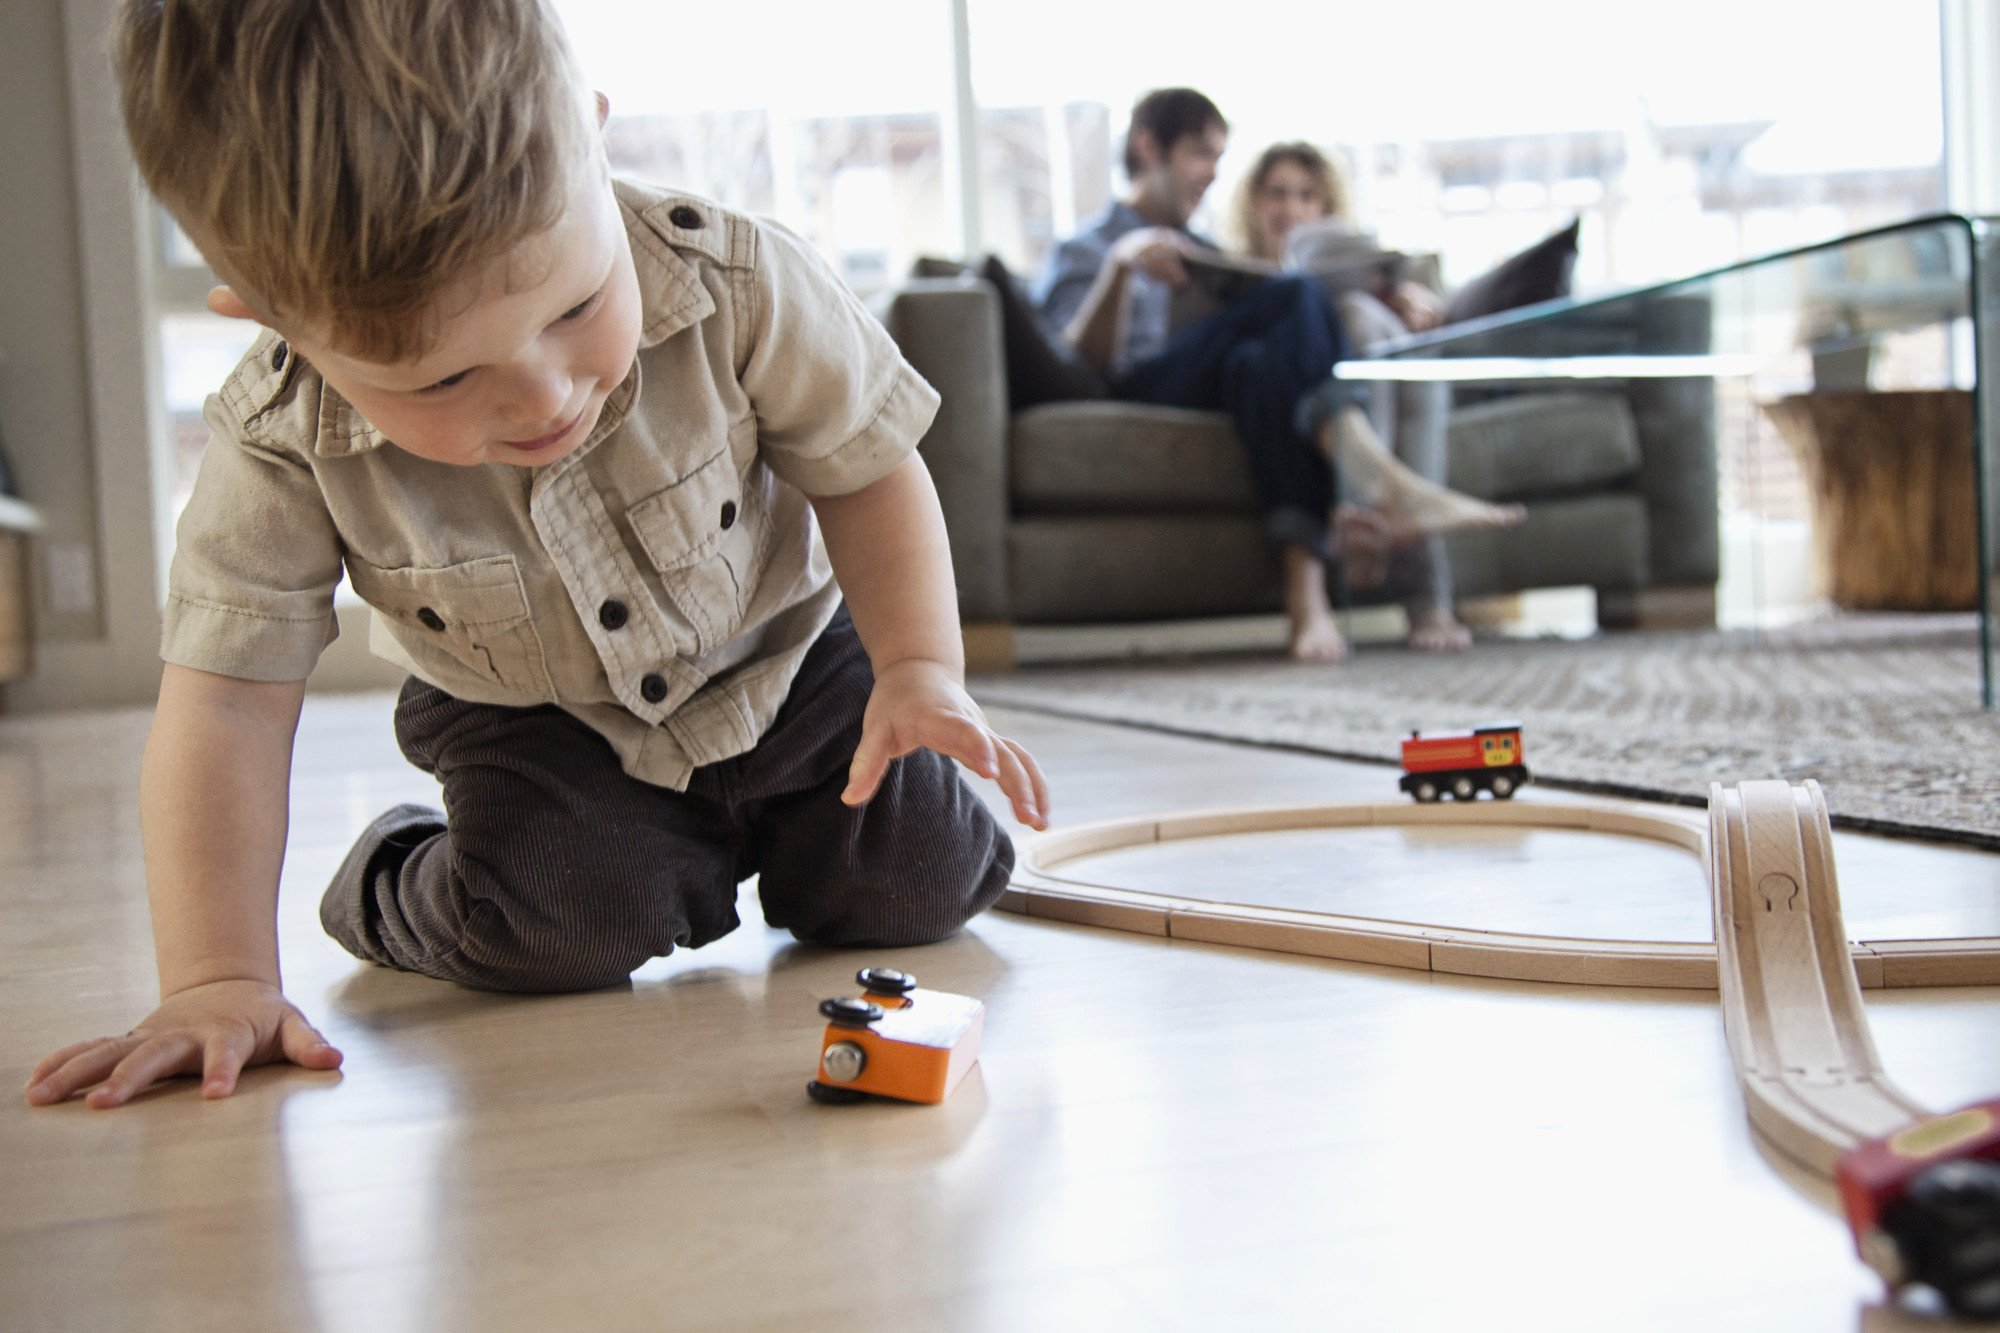 Boy playing on the floor with toy train